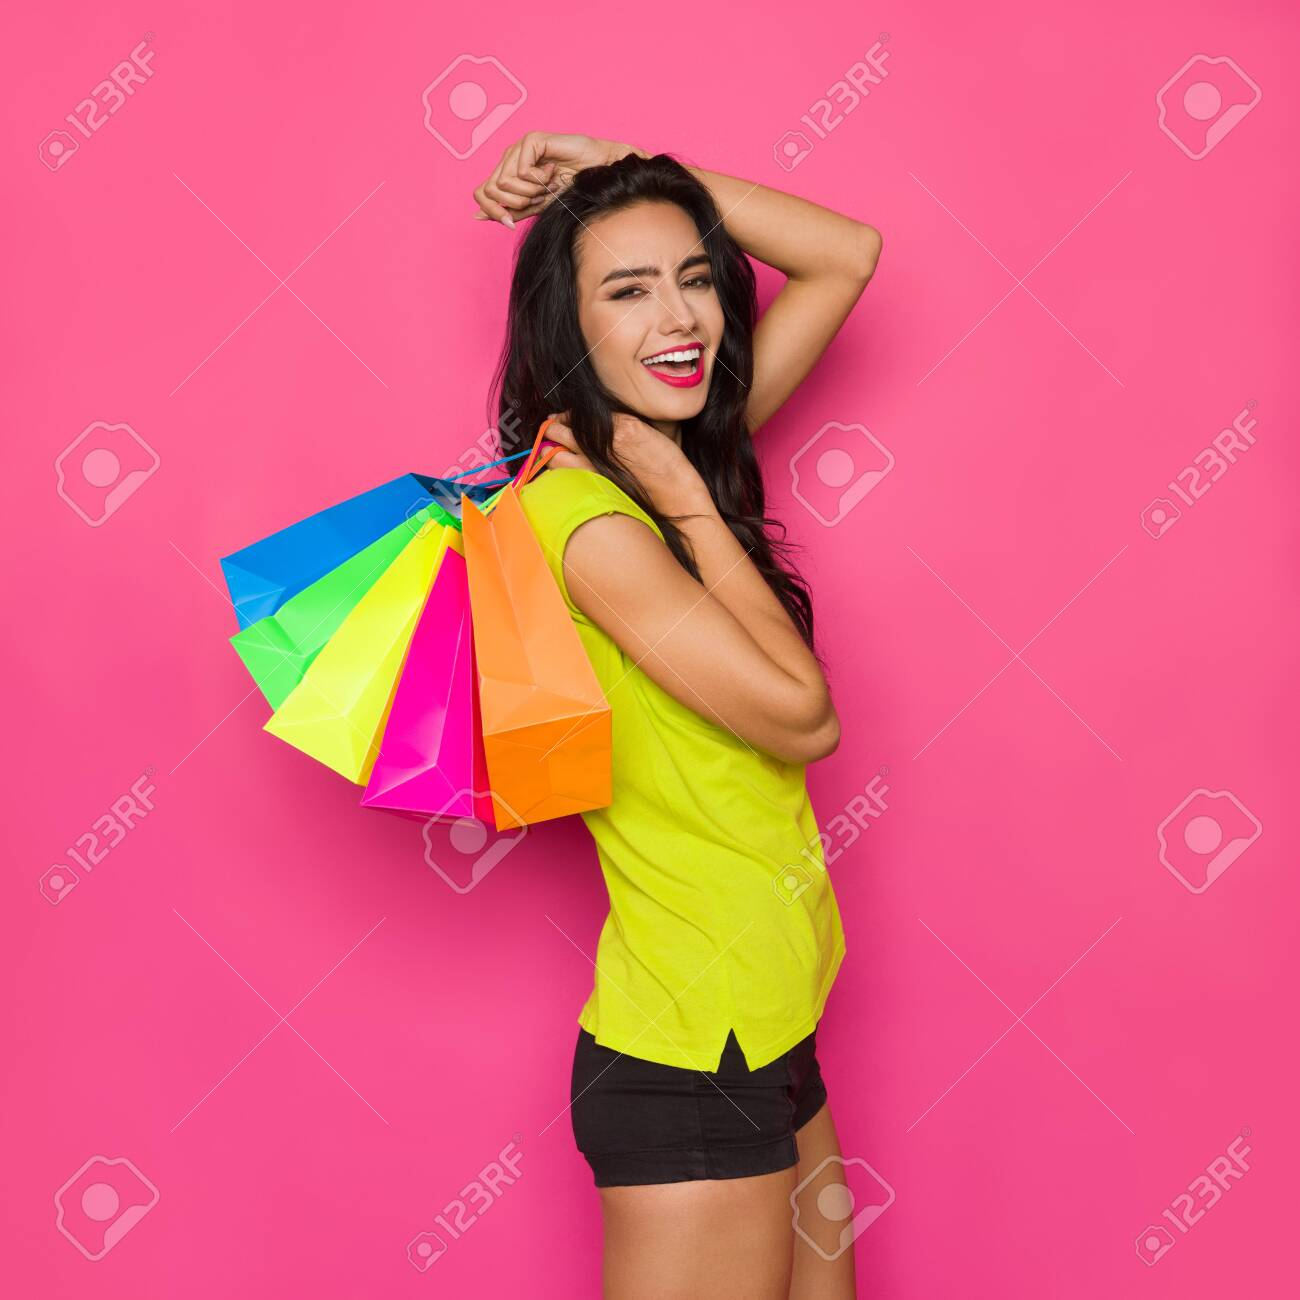 Happy beautiful young woman in vibrant green shirt and black shorts is holding colorful shopping bags on her shoulder and shoutng. Three quarter length studio shot on pink background. - 123523452